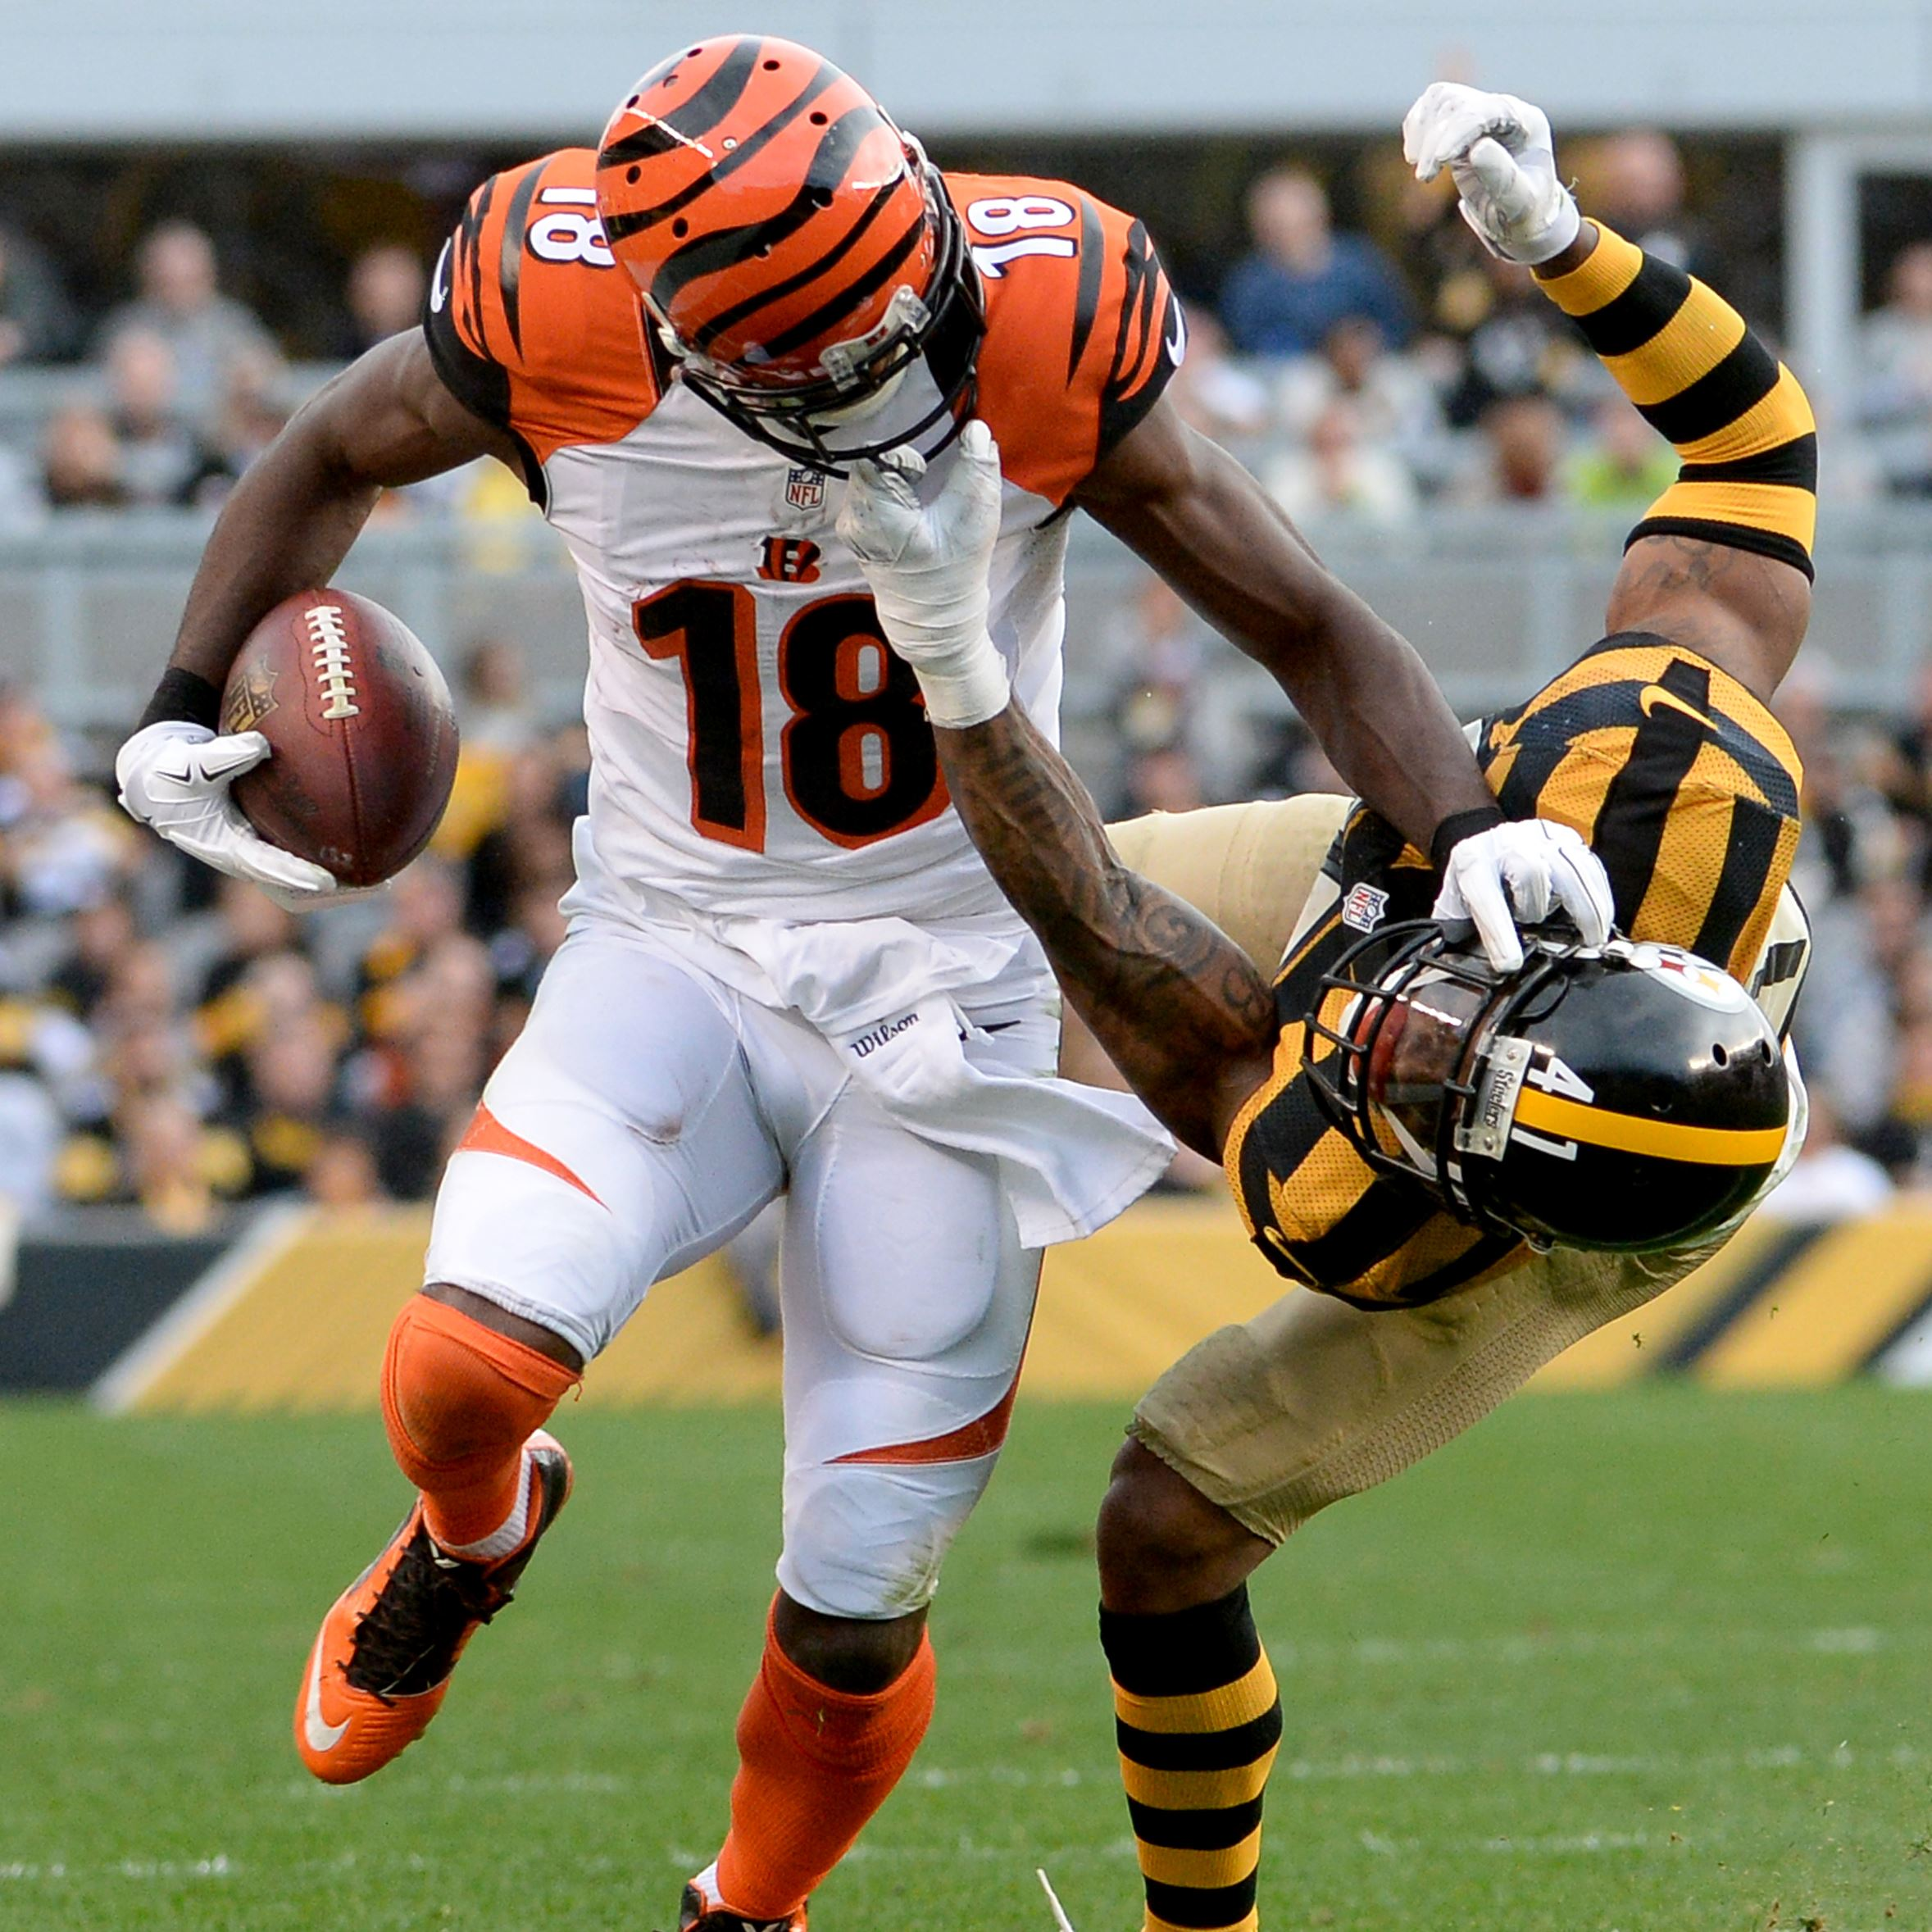 bengals wr a j green is in the business of torturing cornerbacks pittsburgh post gazette. Black Bedroom Furniture Sets. Home Design Ideas